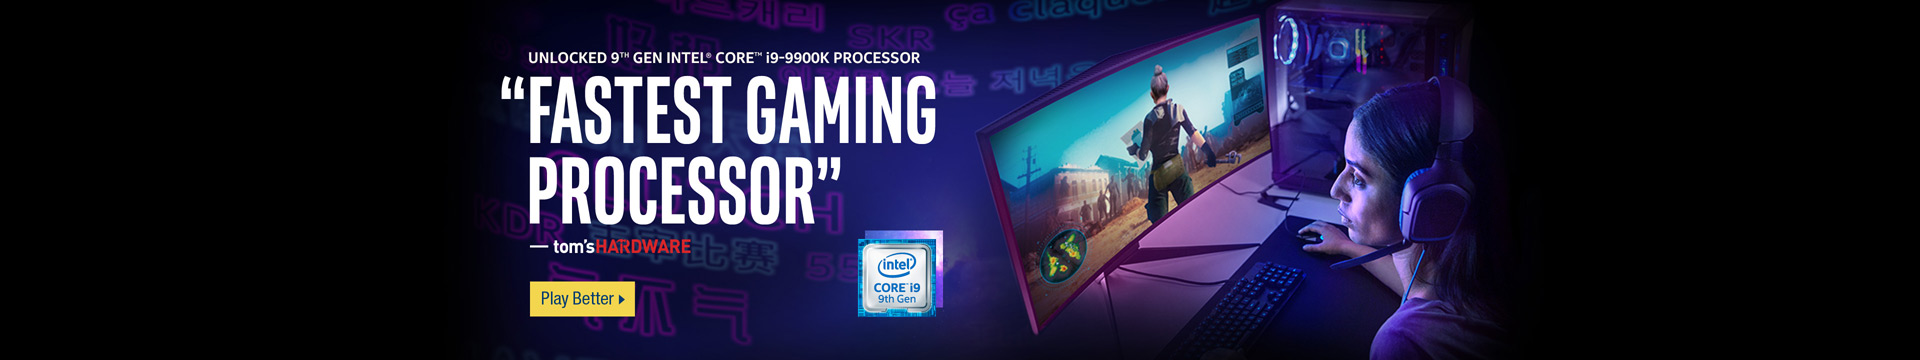 FASTEST GAMING PROCESSOR